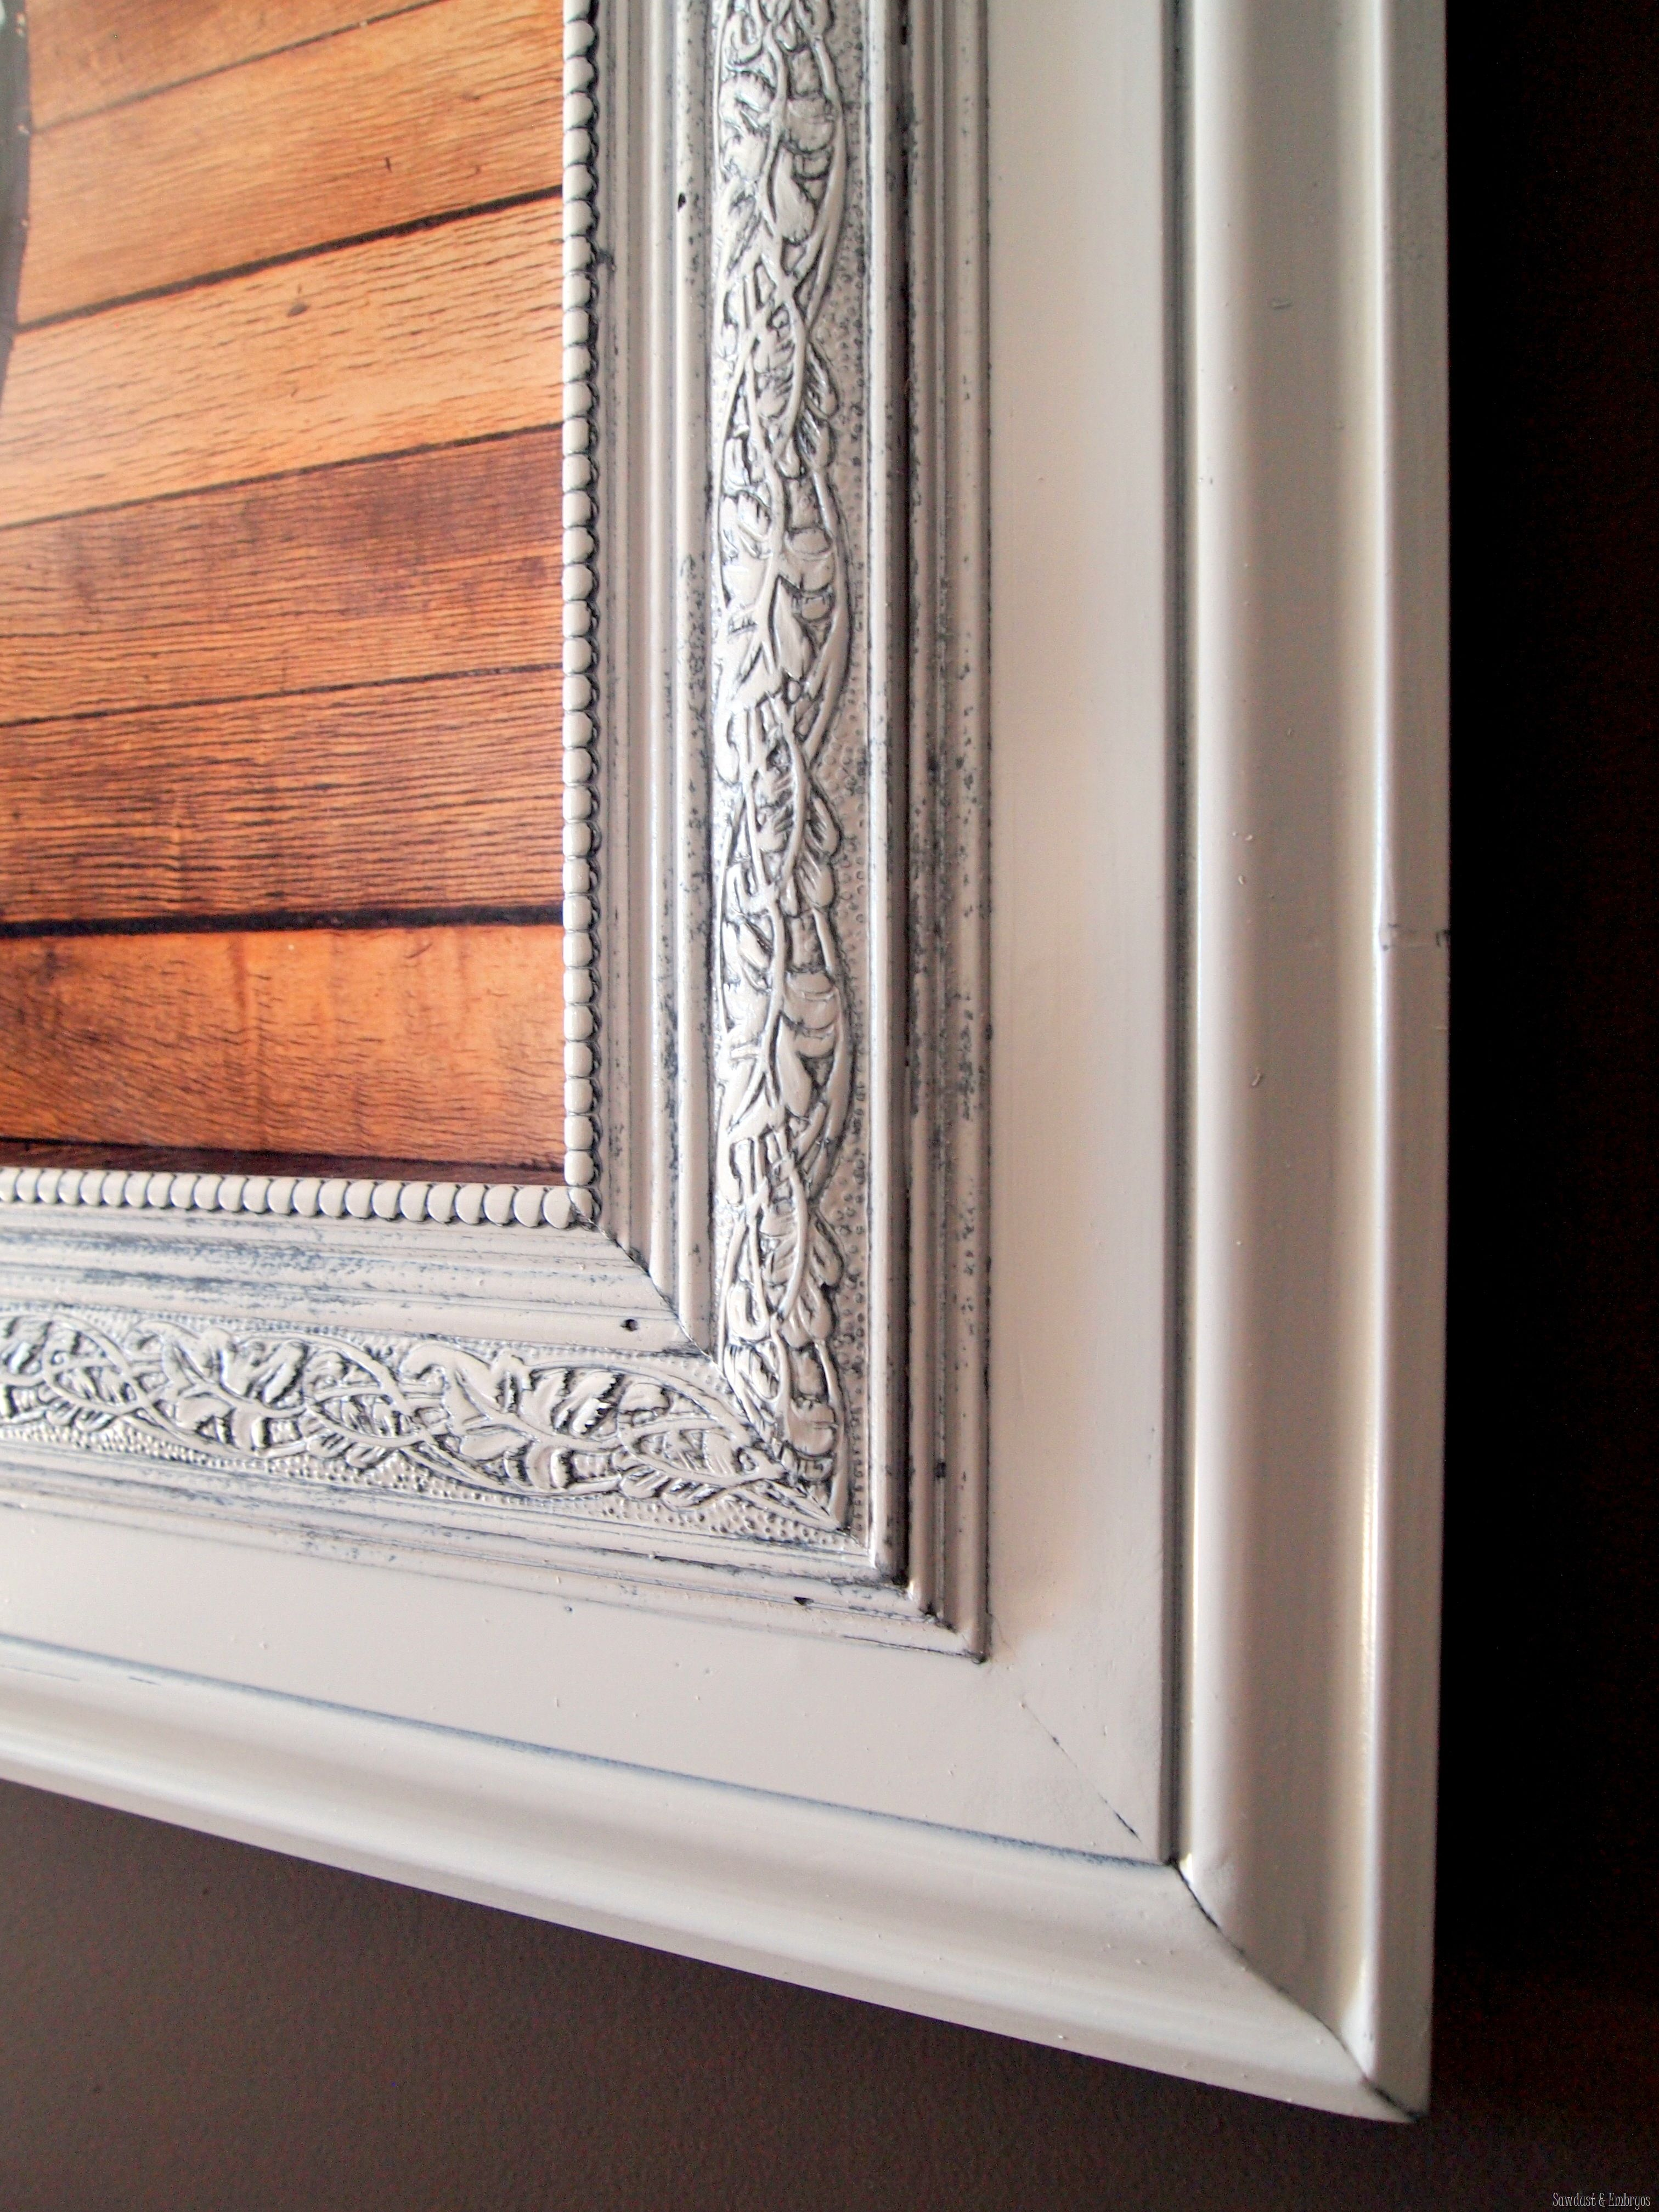 Build a Custom Frame out of Trim Pieces | Craft, Woodworking and ...